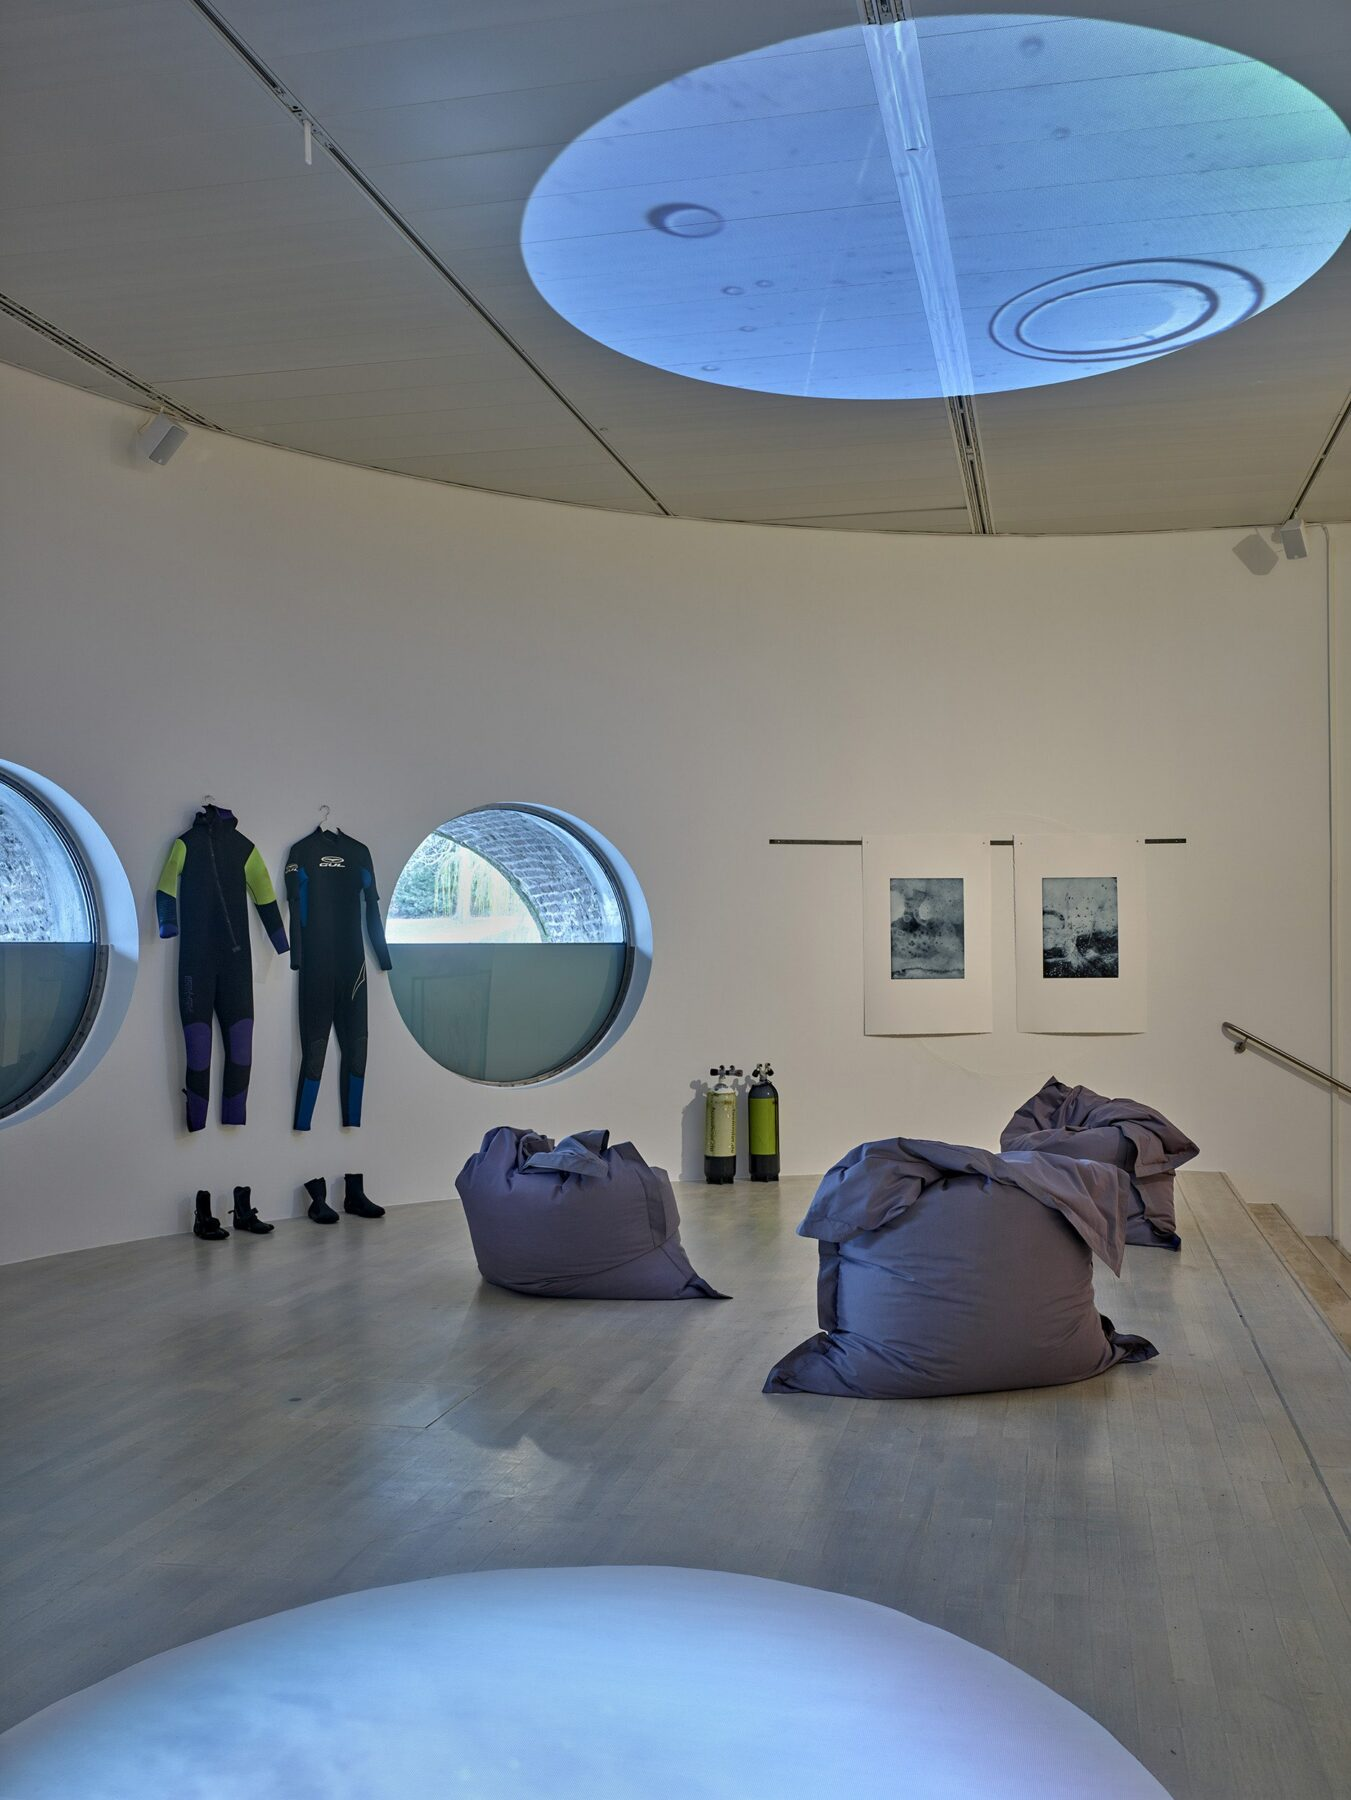 floating circles, exhibition view inside the museum with direct view to the Kaiserteich, 2019, photo: Achim Kukulies